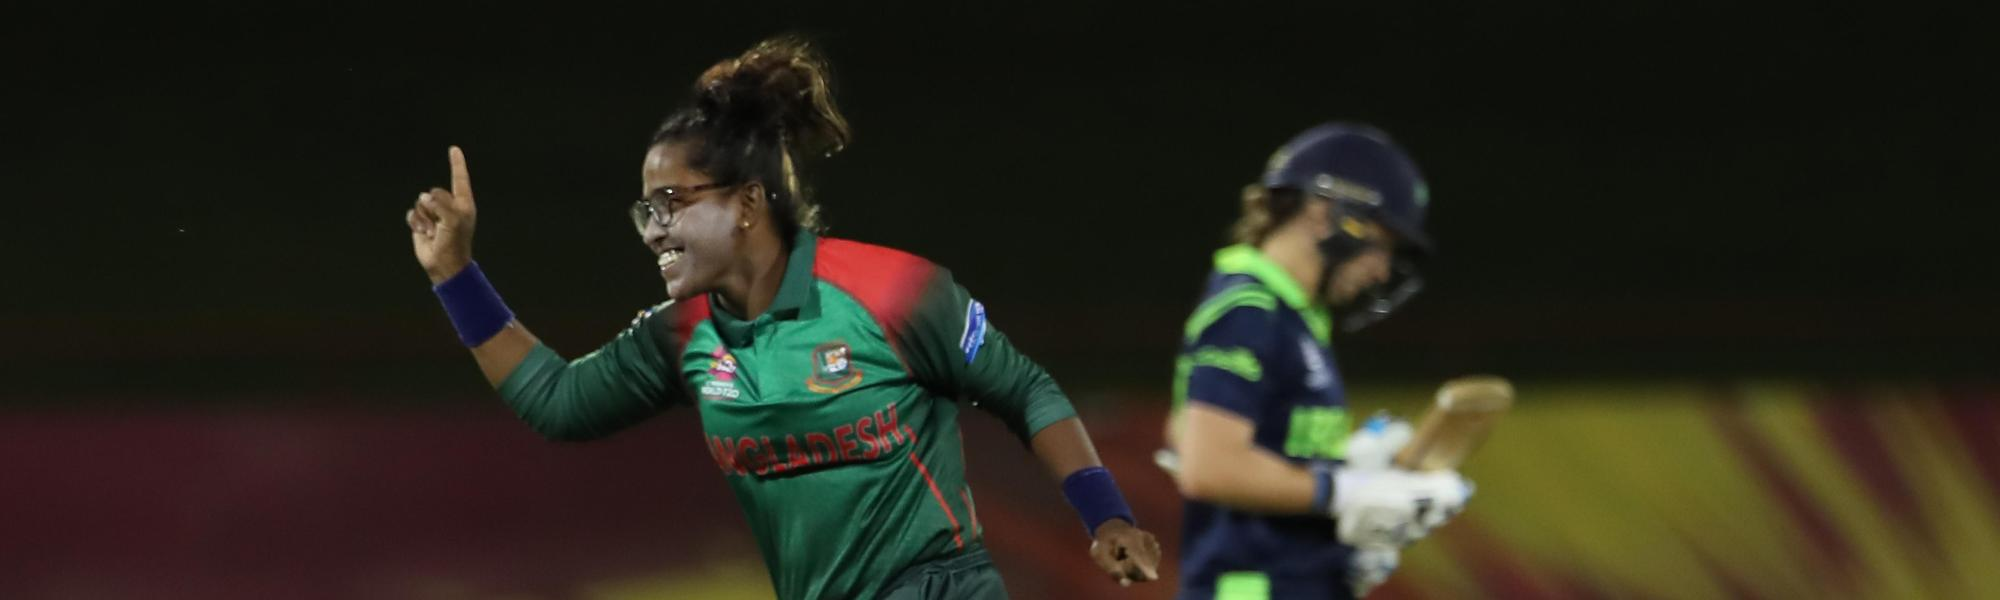 Rumana Ahmed of Bangladesh celebrates a wicket as both teams practice a super-over during the ICC Women's World T20 warm up match between Bangladesh and Ireland on November 4, 2018 at the Guyana National Stadium in Providence, Guyana.